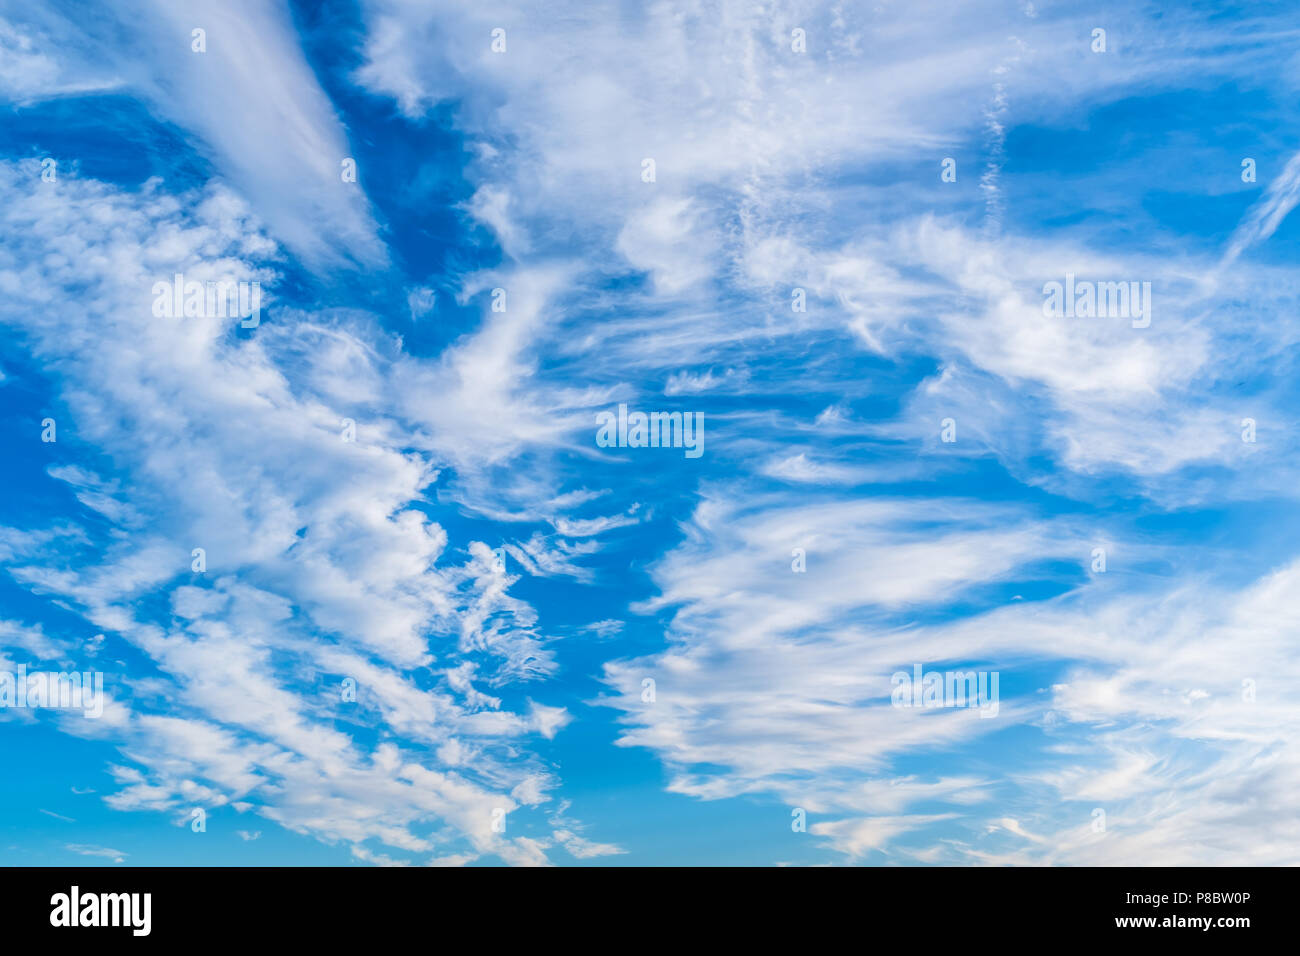 blue sky with white wispy cloud natural cloudscape background Stock Photo